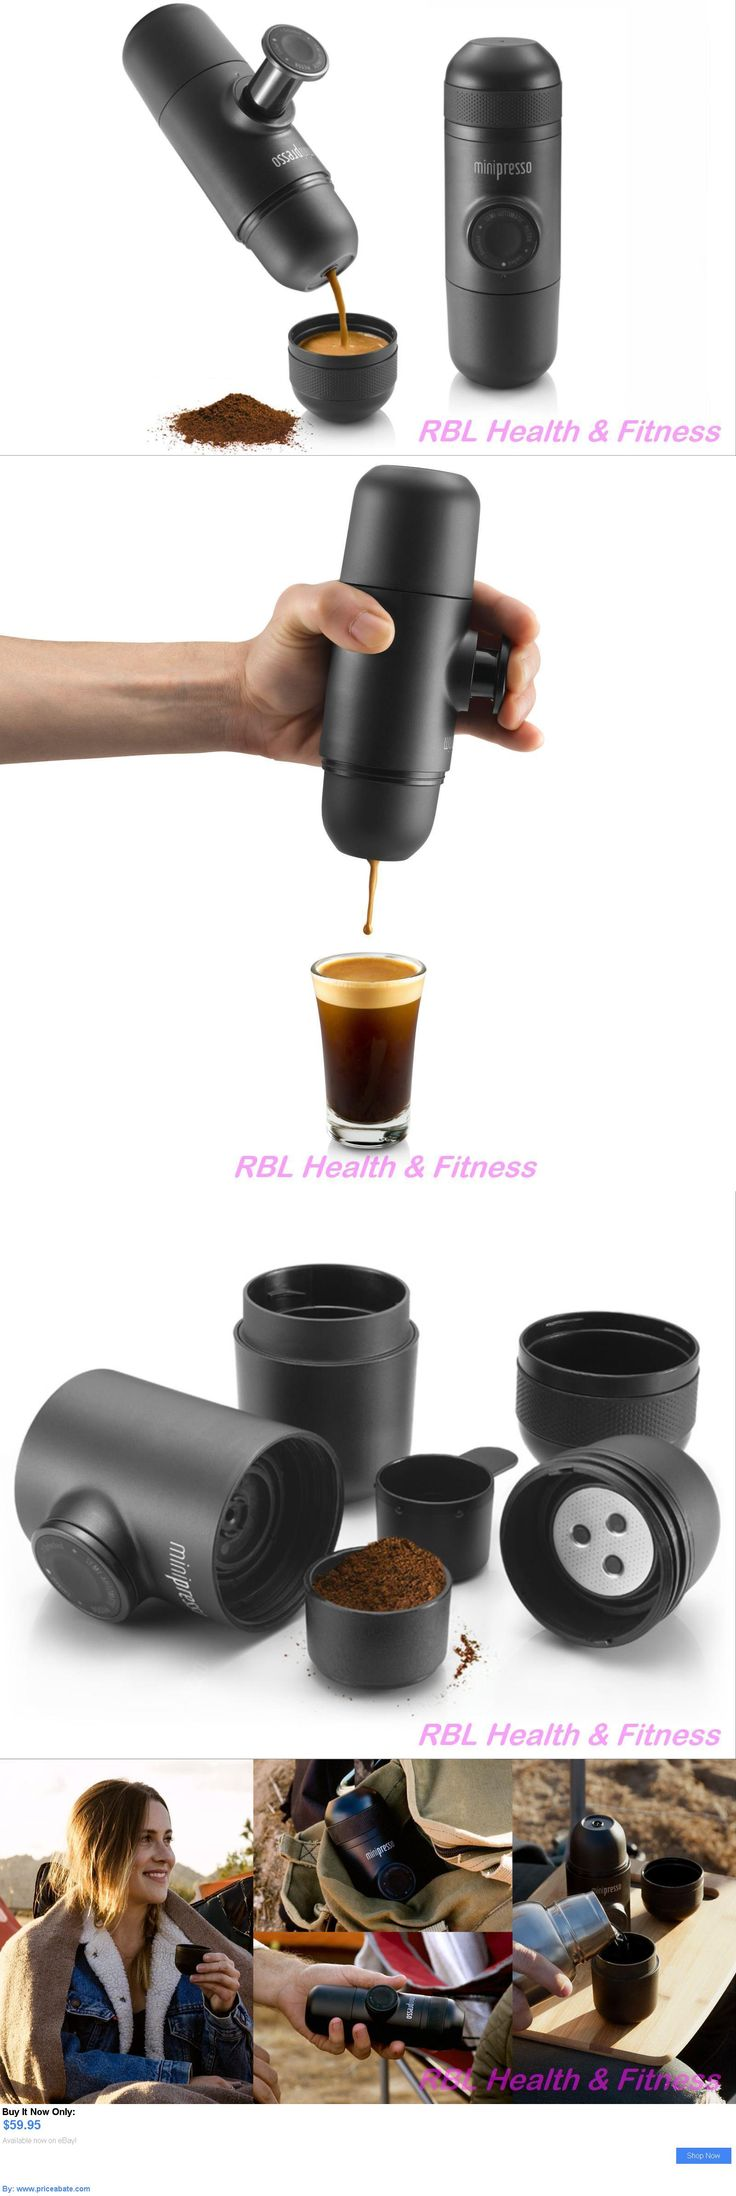 Coffee Maker Hand Pump : 17 Best images about When I move out on Pinterest Kawaii shop, Pikachu and Espresso maker